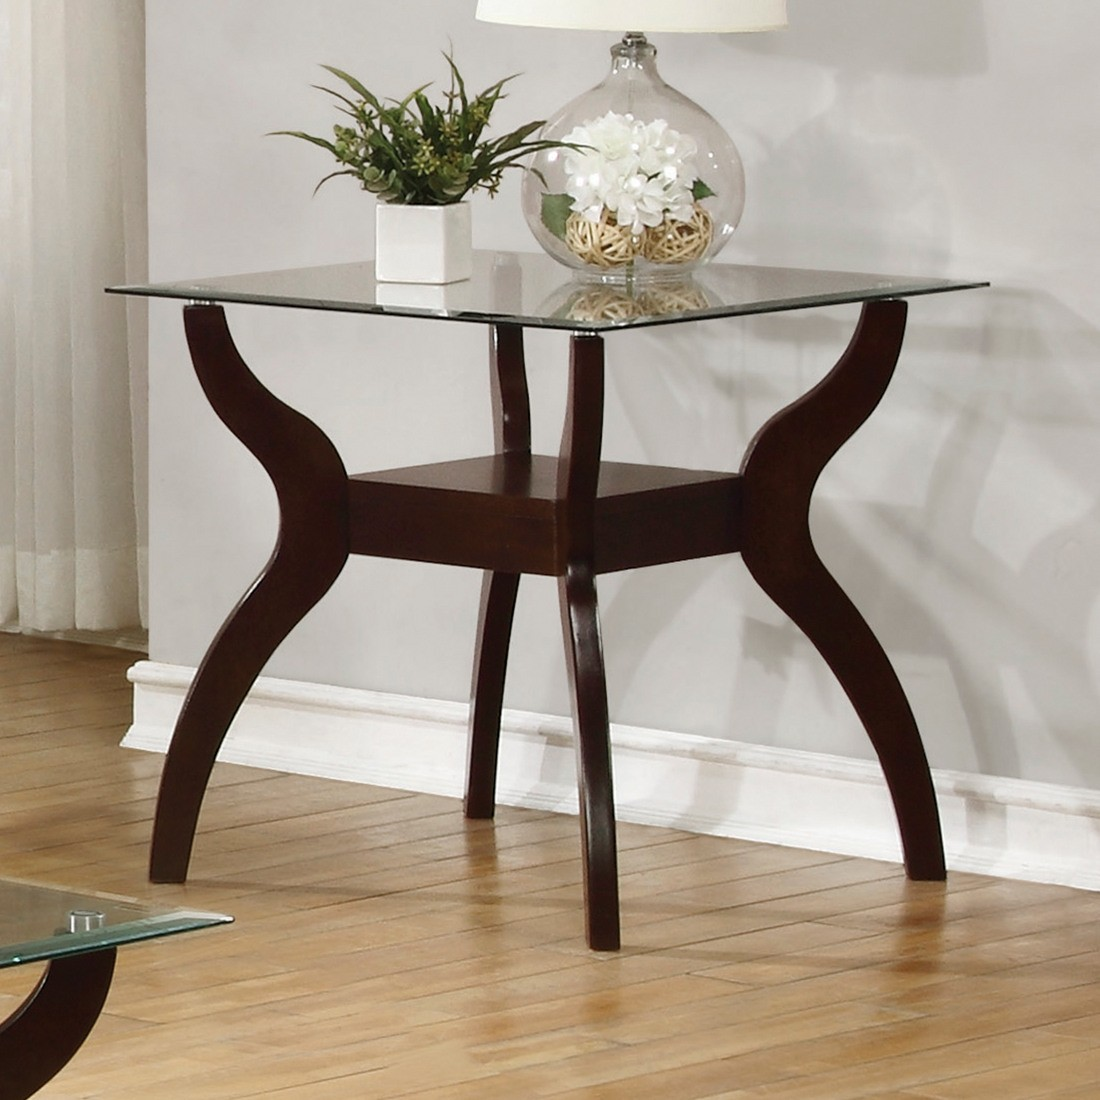 coaster mid century modern end table with glass top tables and coffee cappuccino furniture dining room chairs inexpensive bedside ideas sauder carson forge side pottery barn